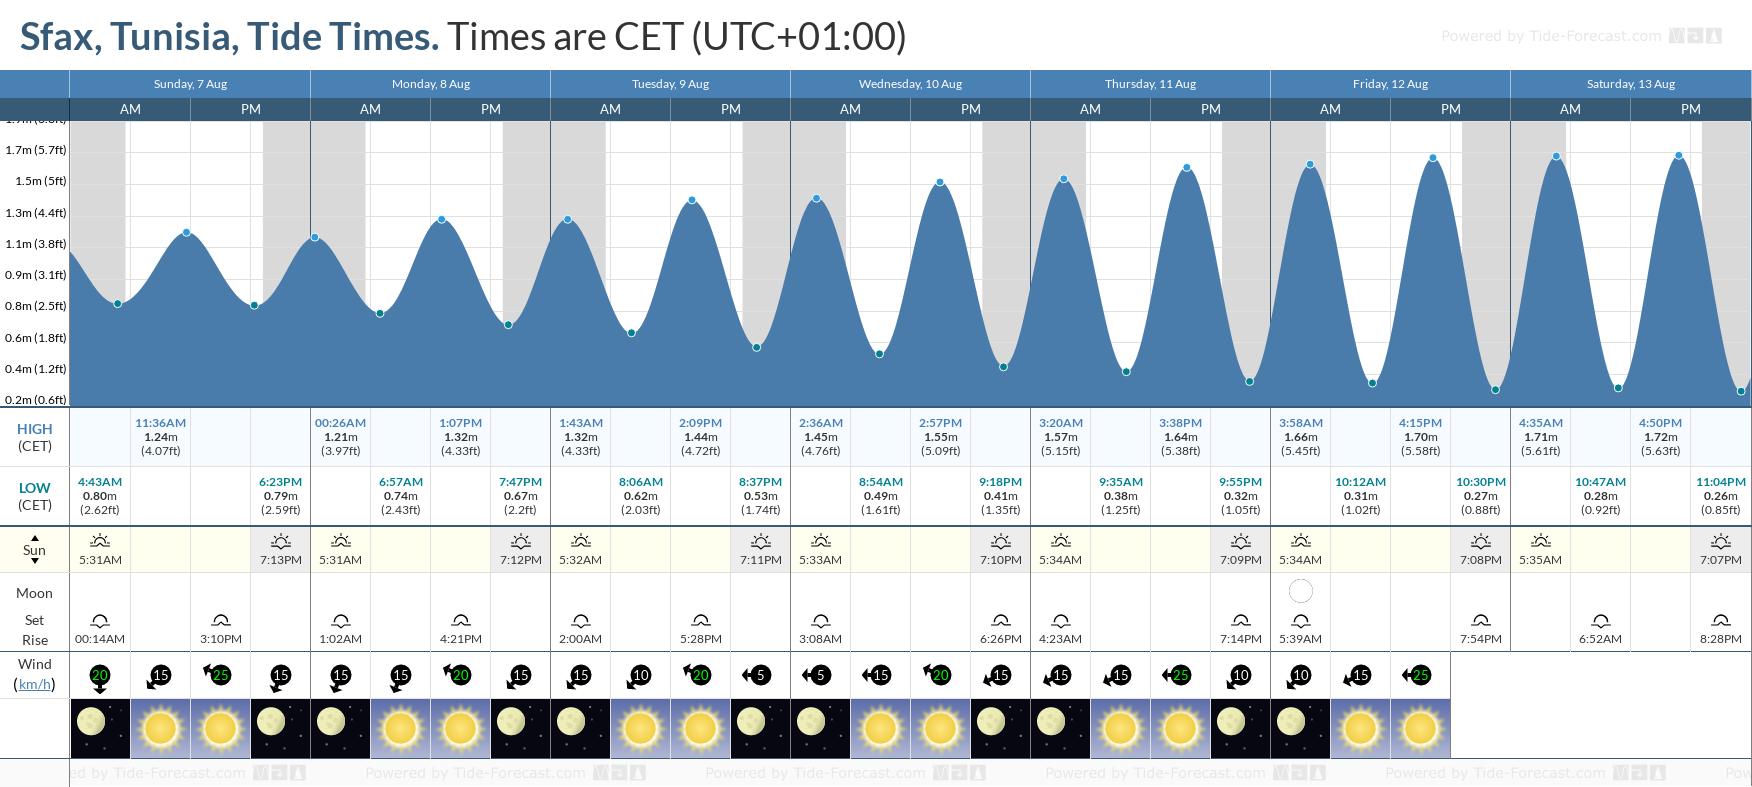 Sfax, Tunisia Tide Chart including high and low tide tide times for the next 7 days